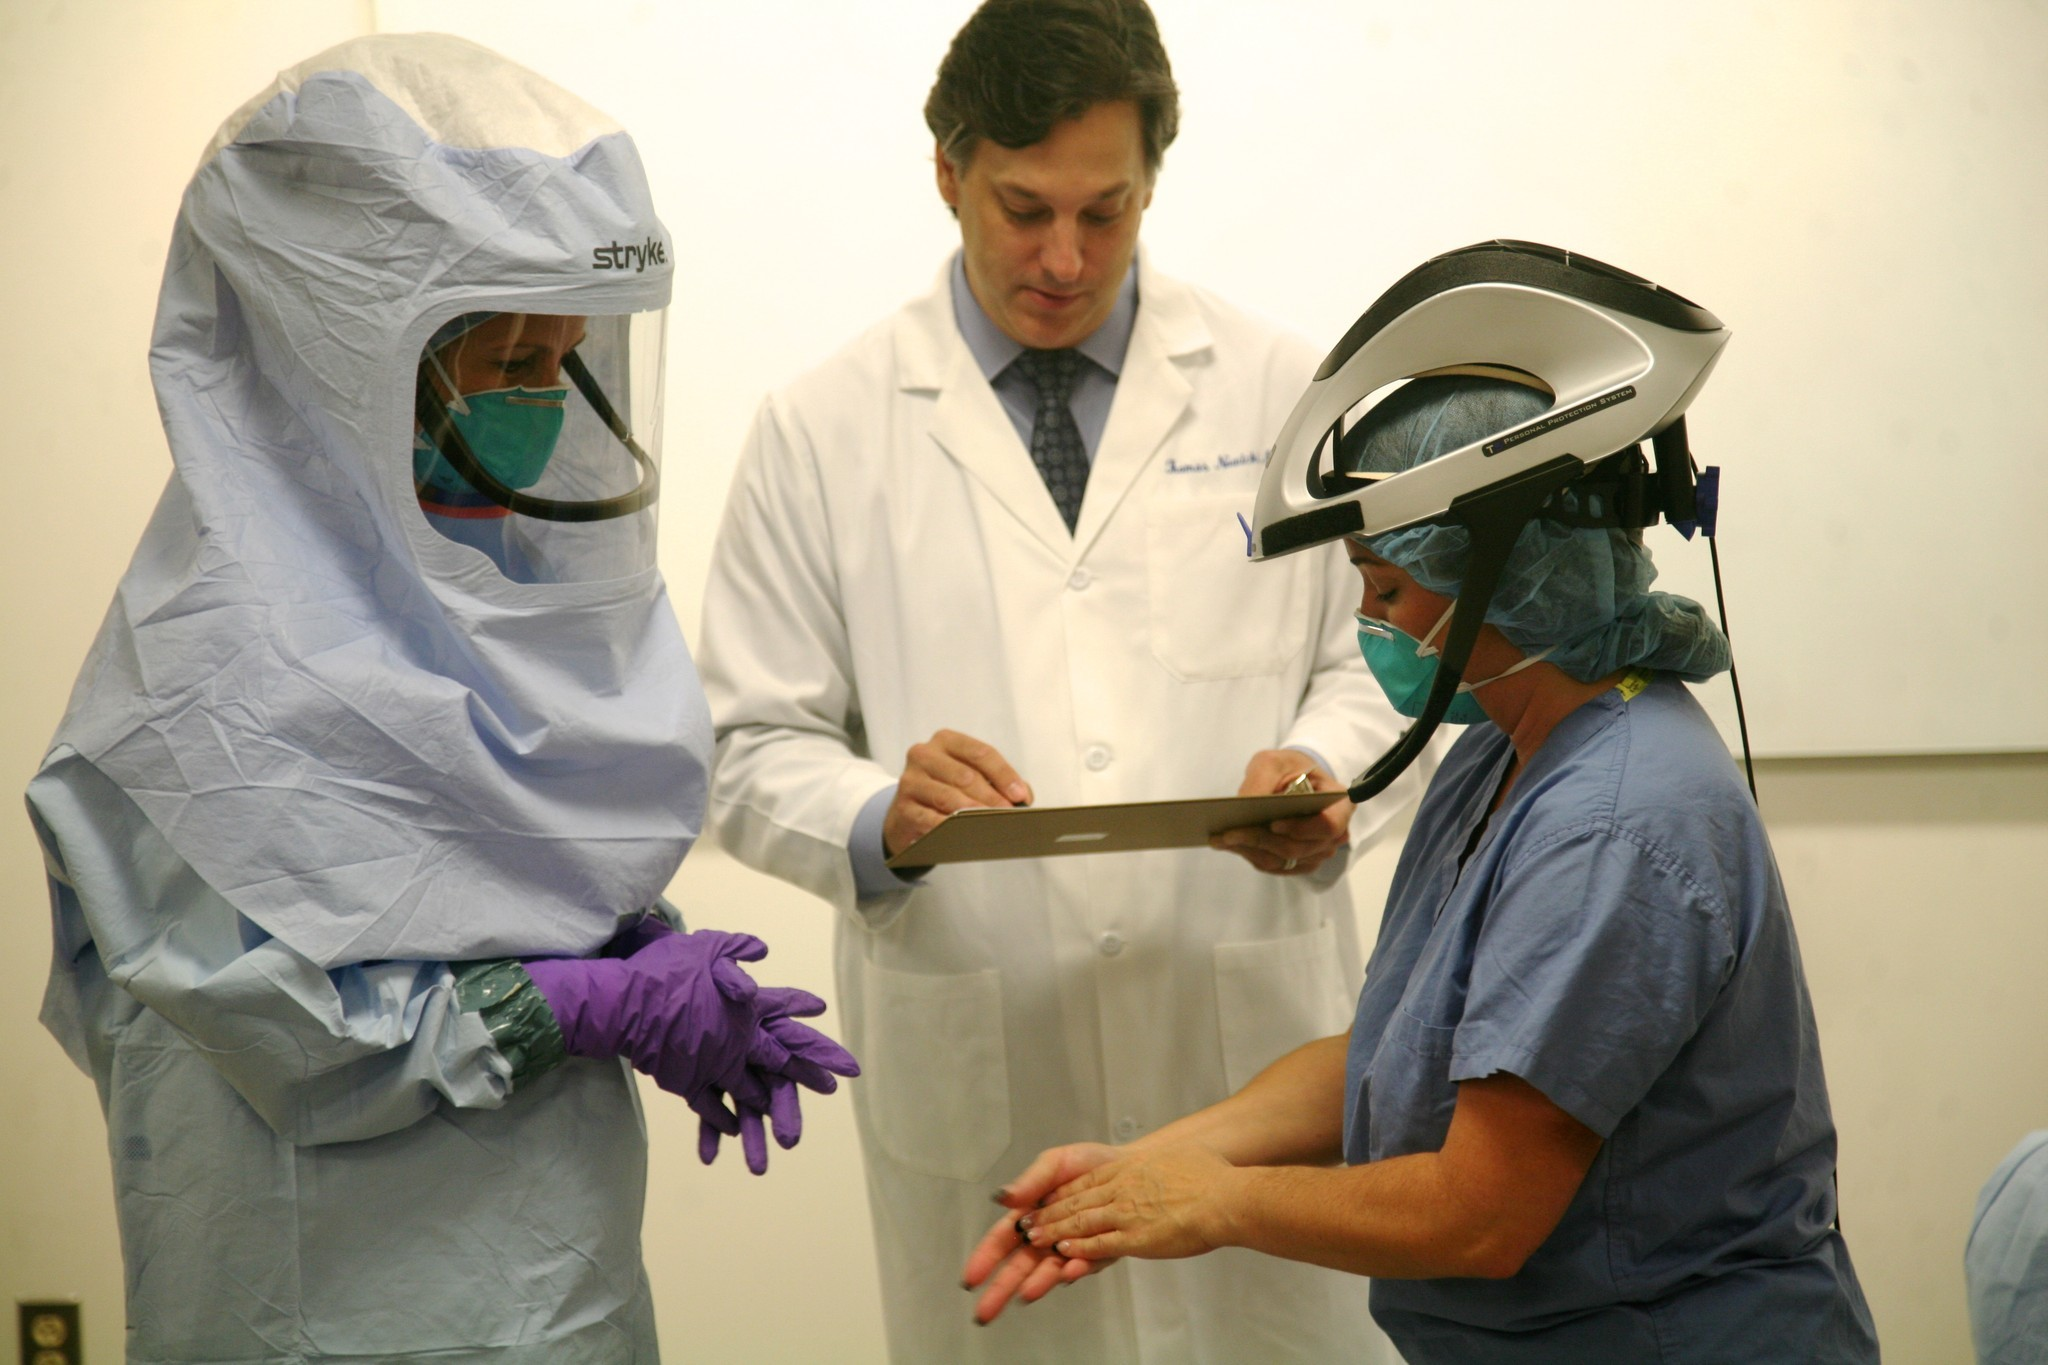 Watch: Hartford Hospital Staff Put On Ebola Protective Gear